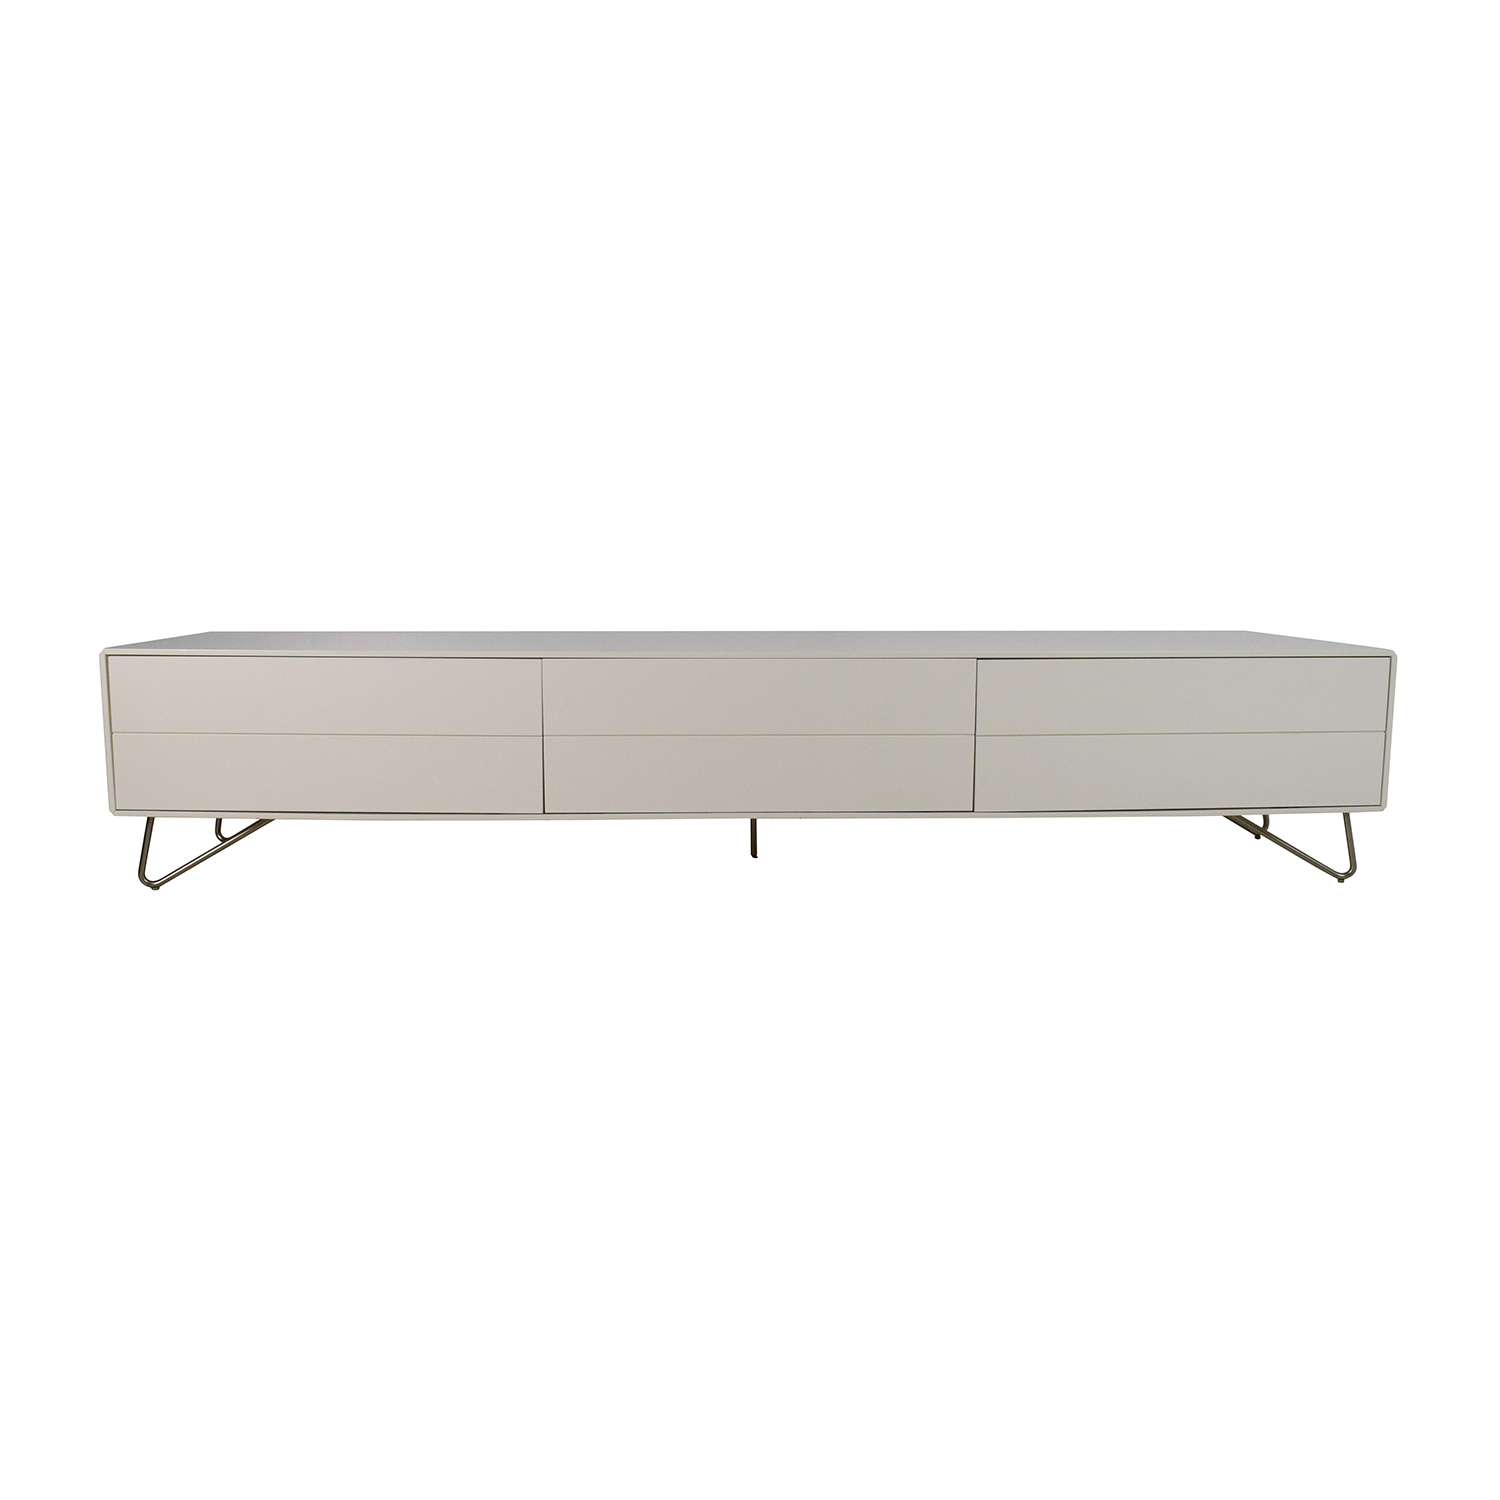 BoConcept BoConcept Fermo Media Unit for sale